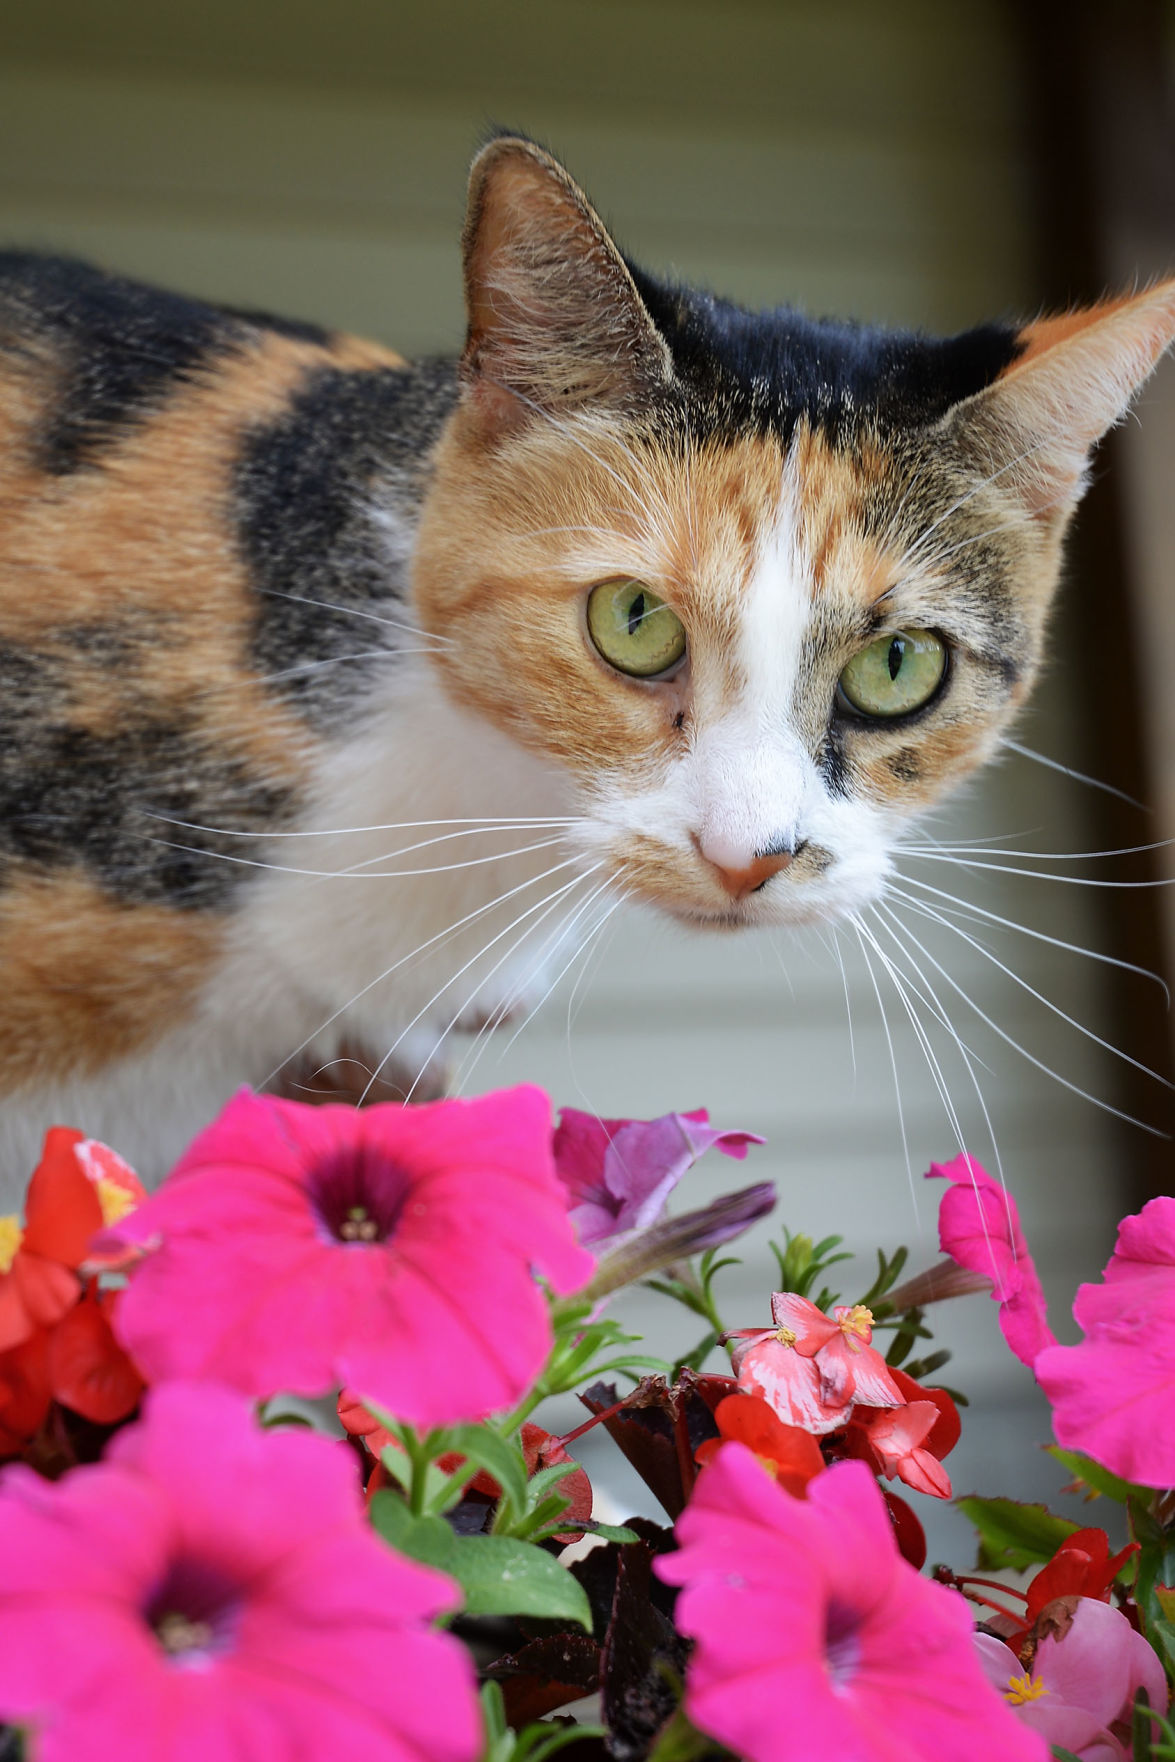 Experts Offer Advice To Weed Out Plants Toxic To Pets Lifestyles